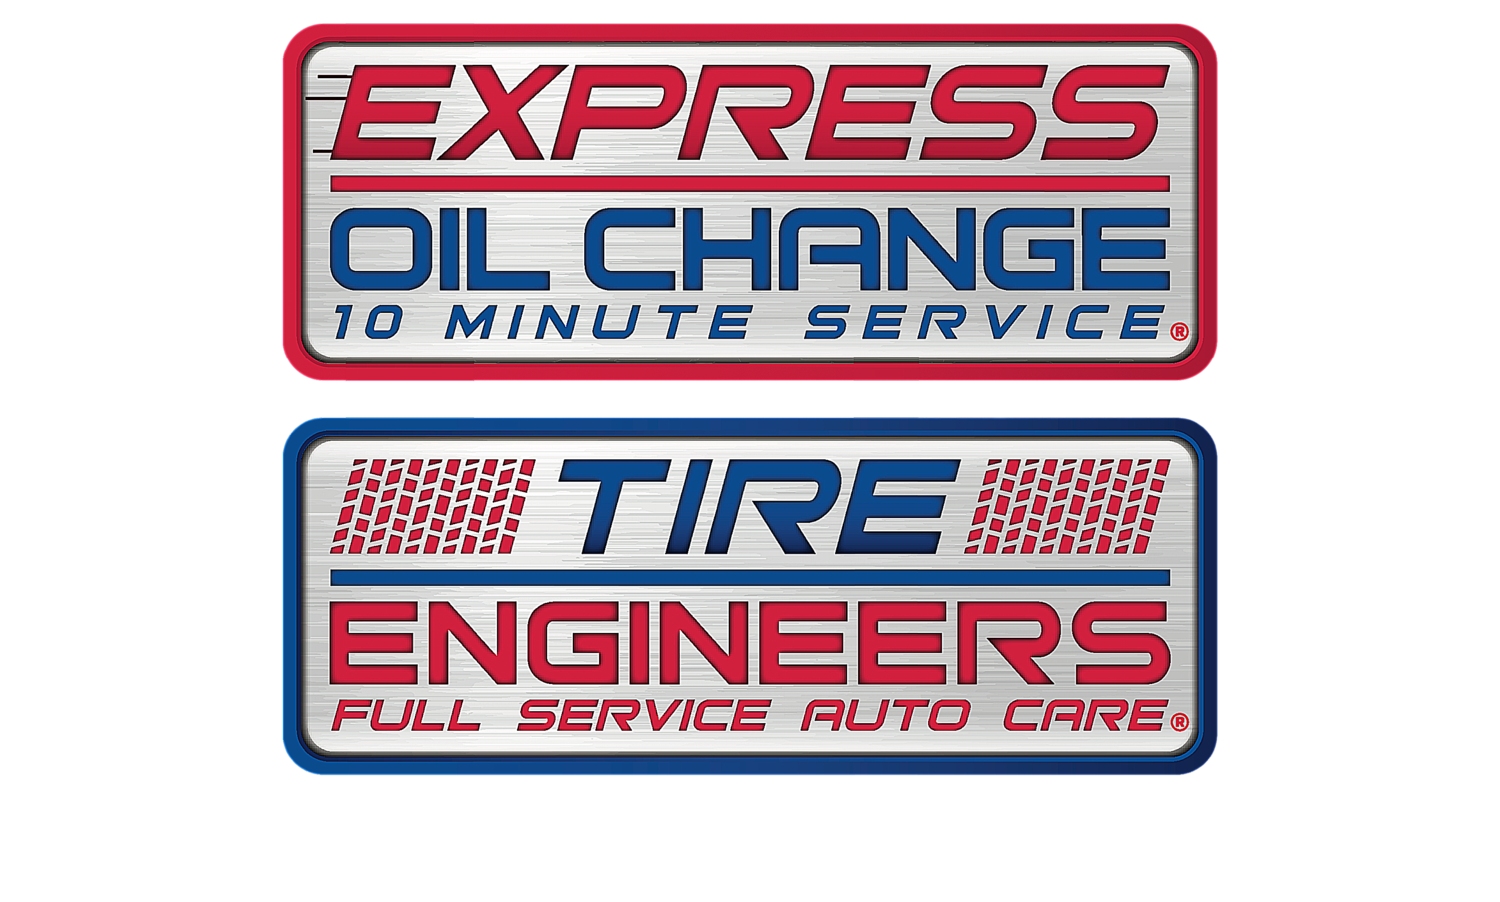 Express Oil Change & Tire Engineers Kingsport TN